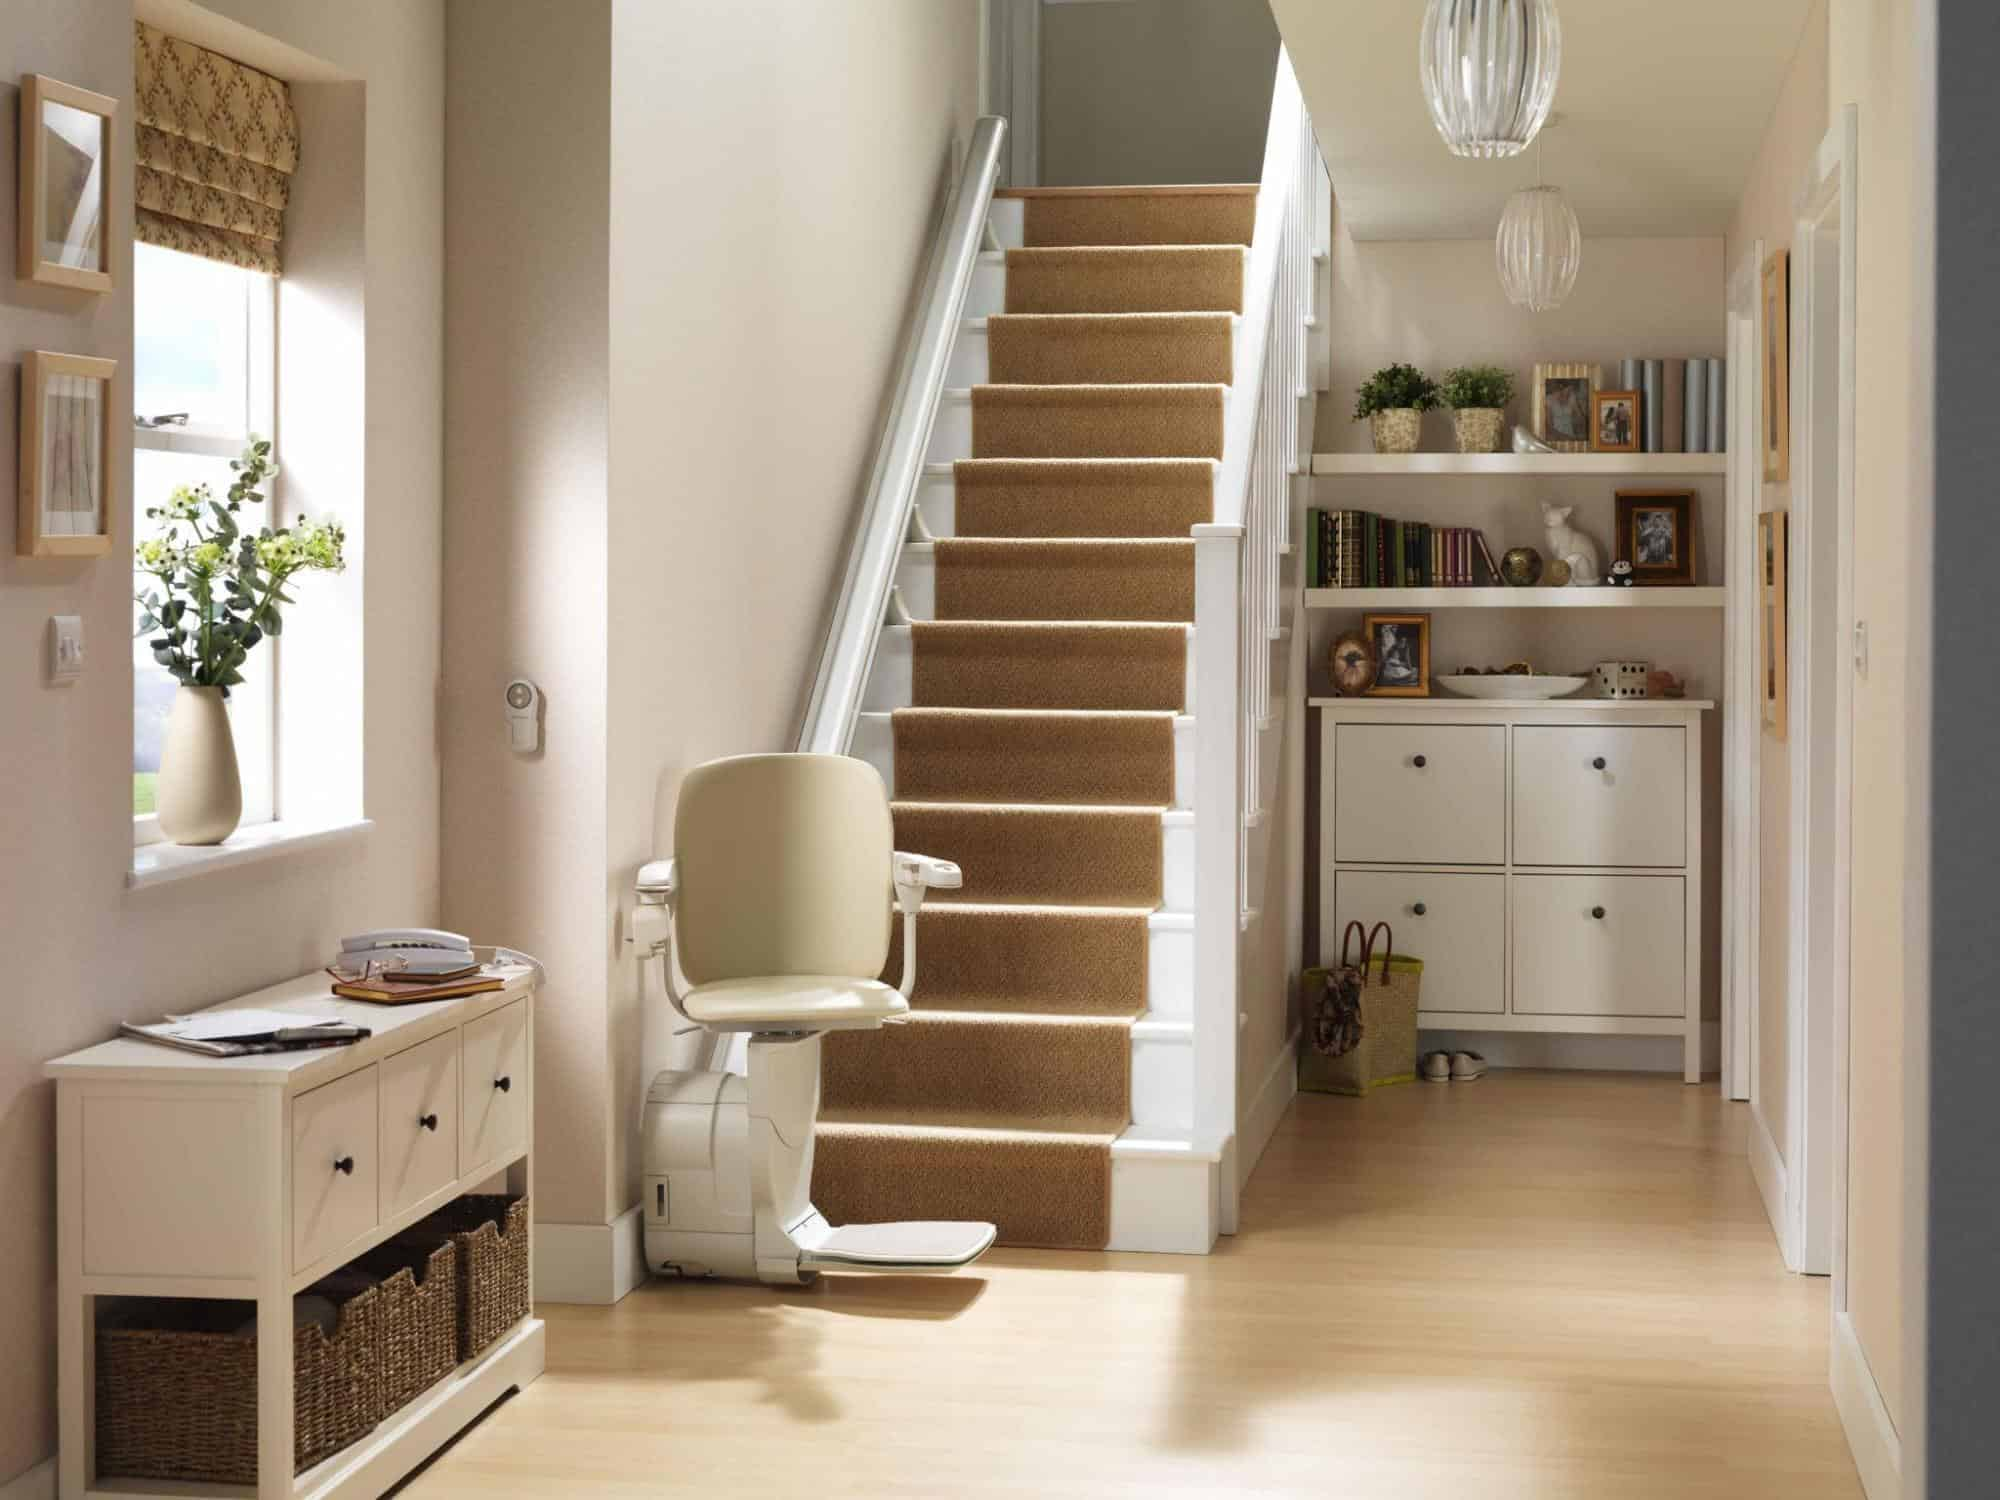 Stannah outdoor stairlift repairs